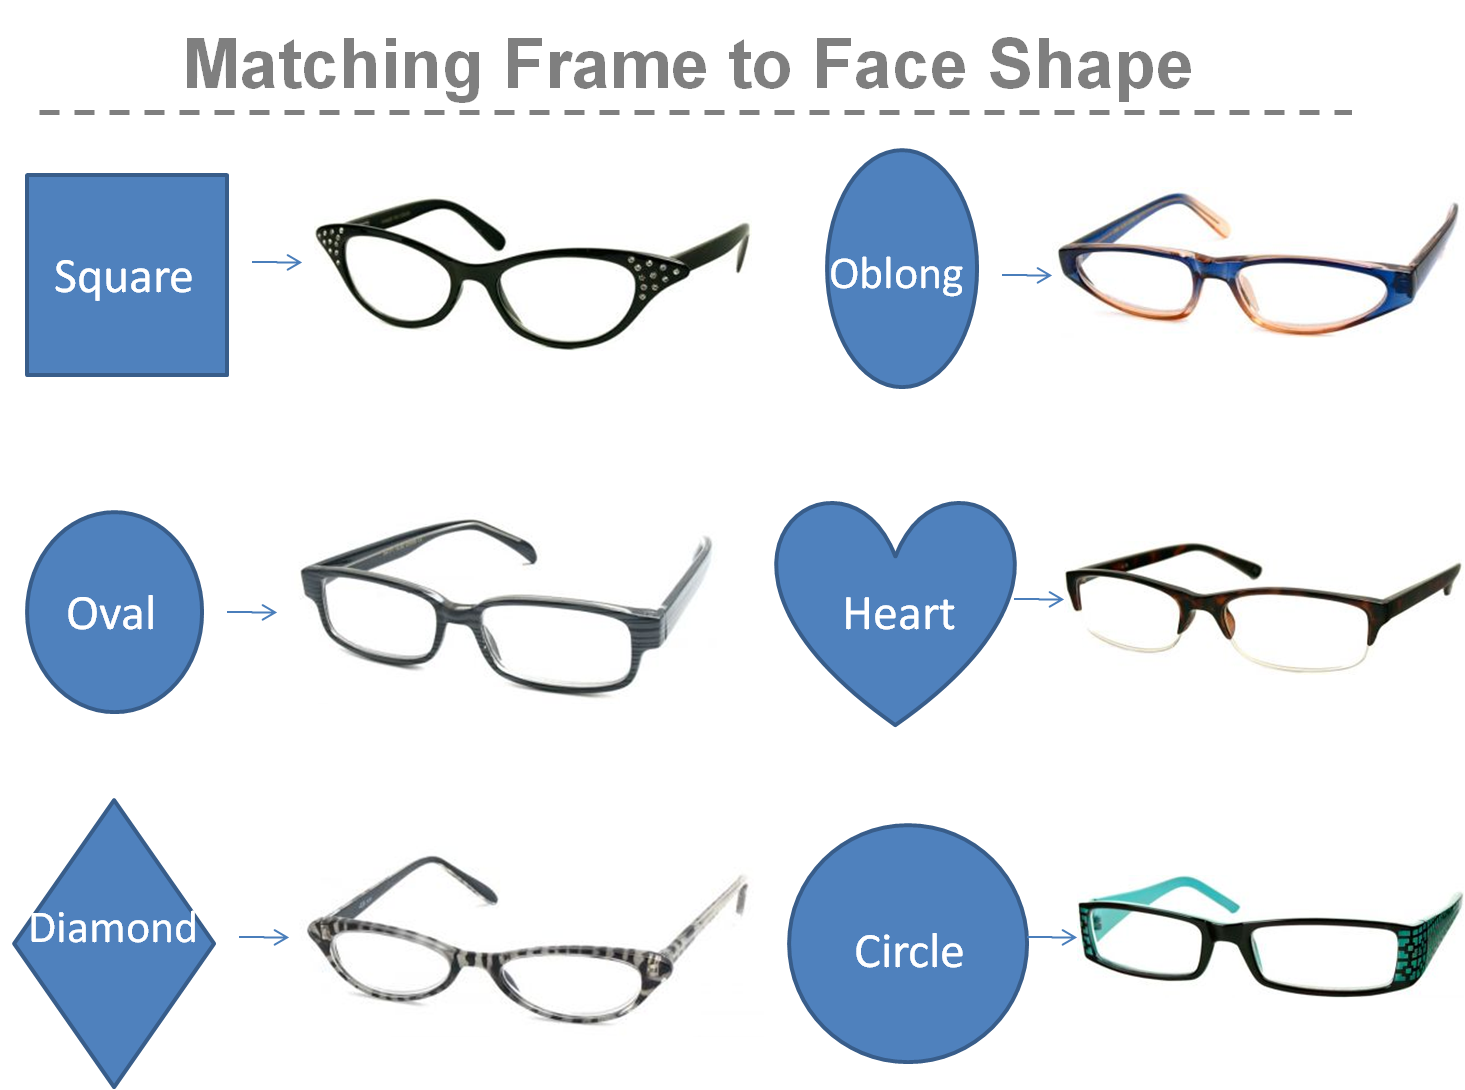 prescription glasses for small and long oblong faces buy prescription eyeglasses online rx glasses frame